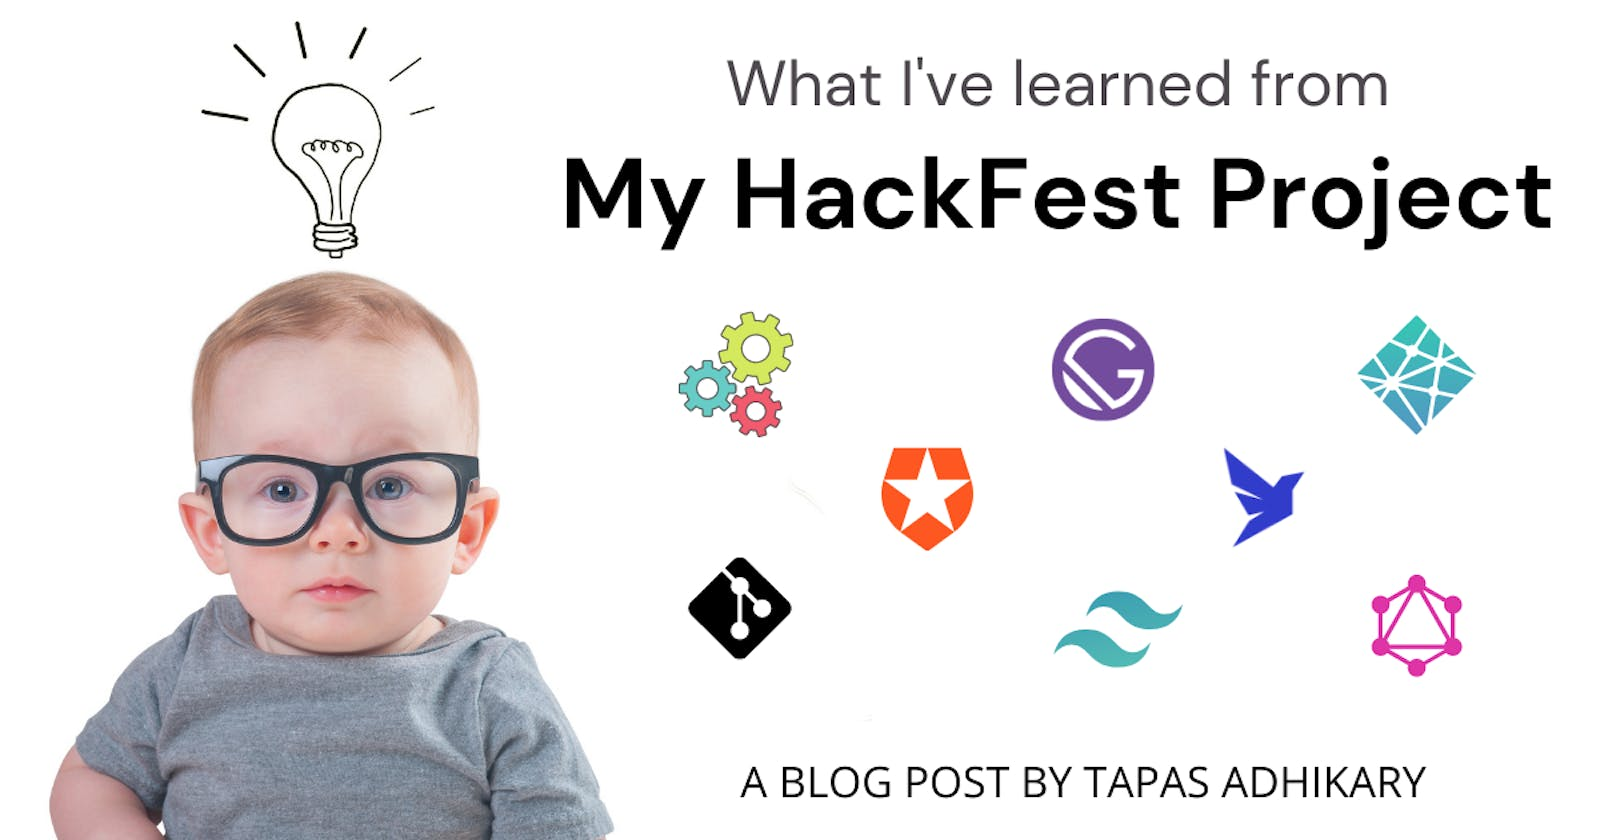 I've completed a HackFest project, here is what I've learned